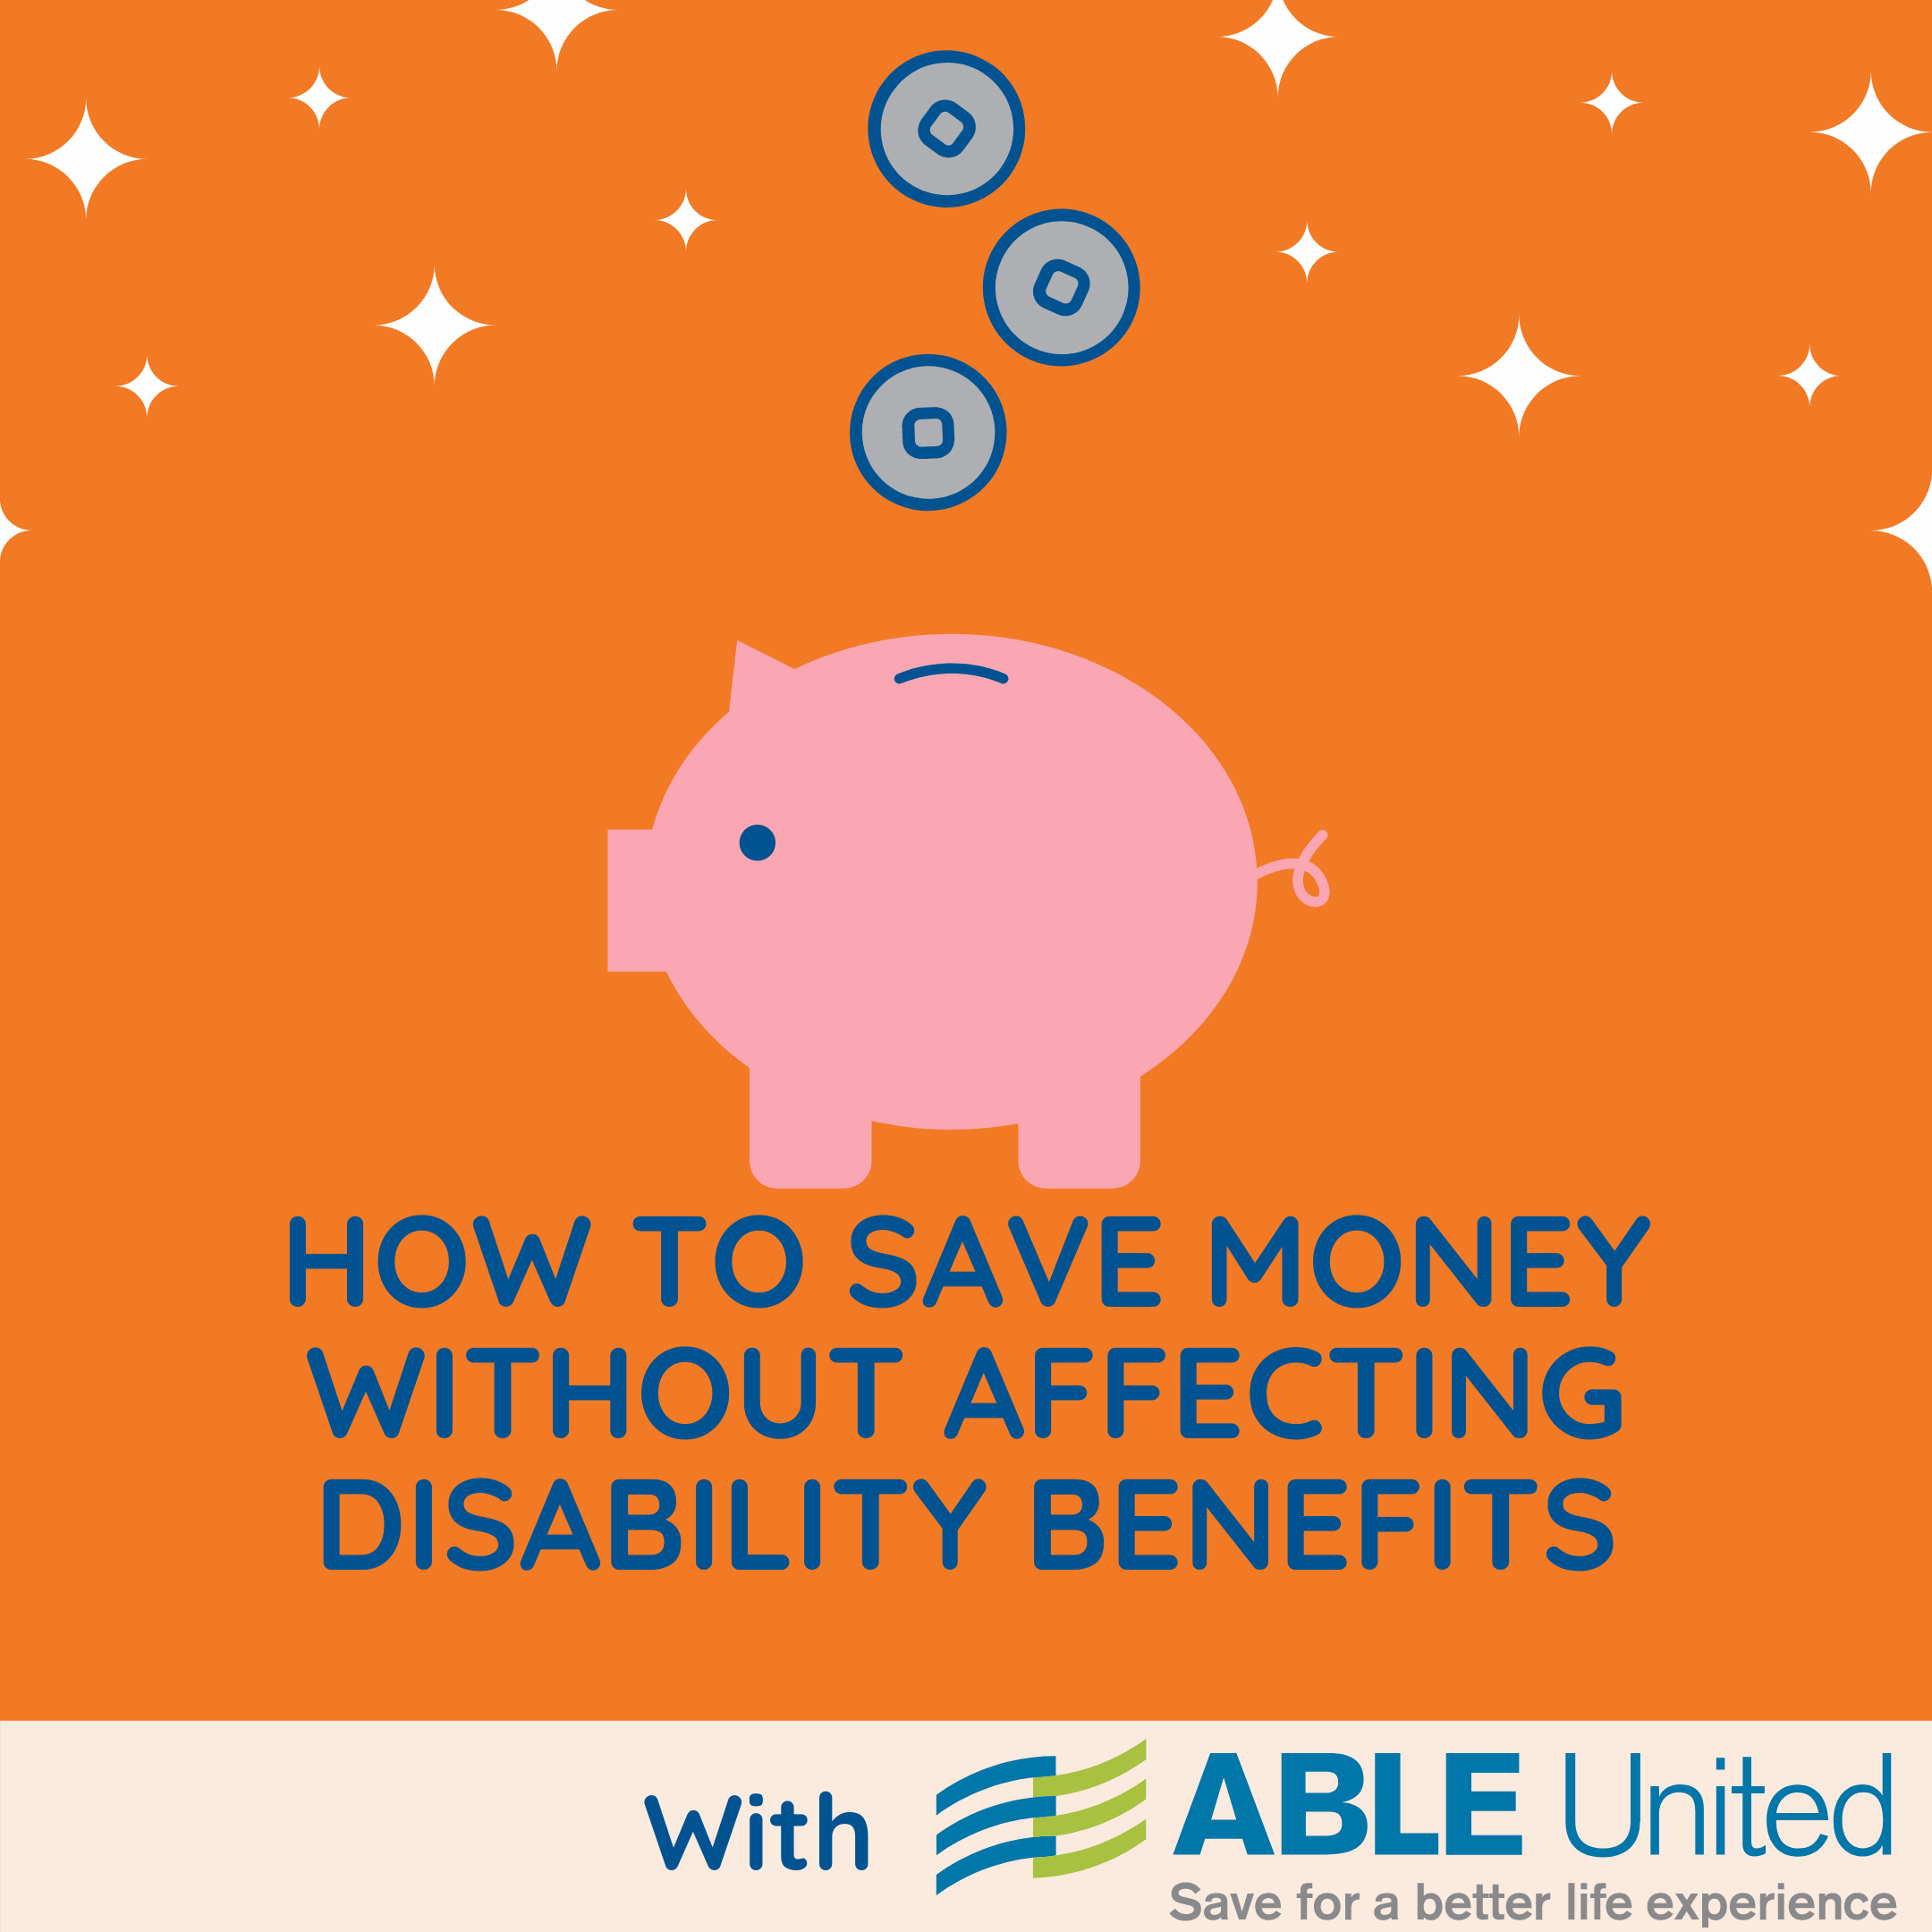 Can I Have a Savings Account Without Affecting My Disability Benefits?